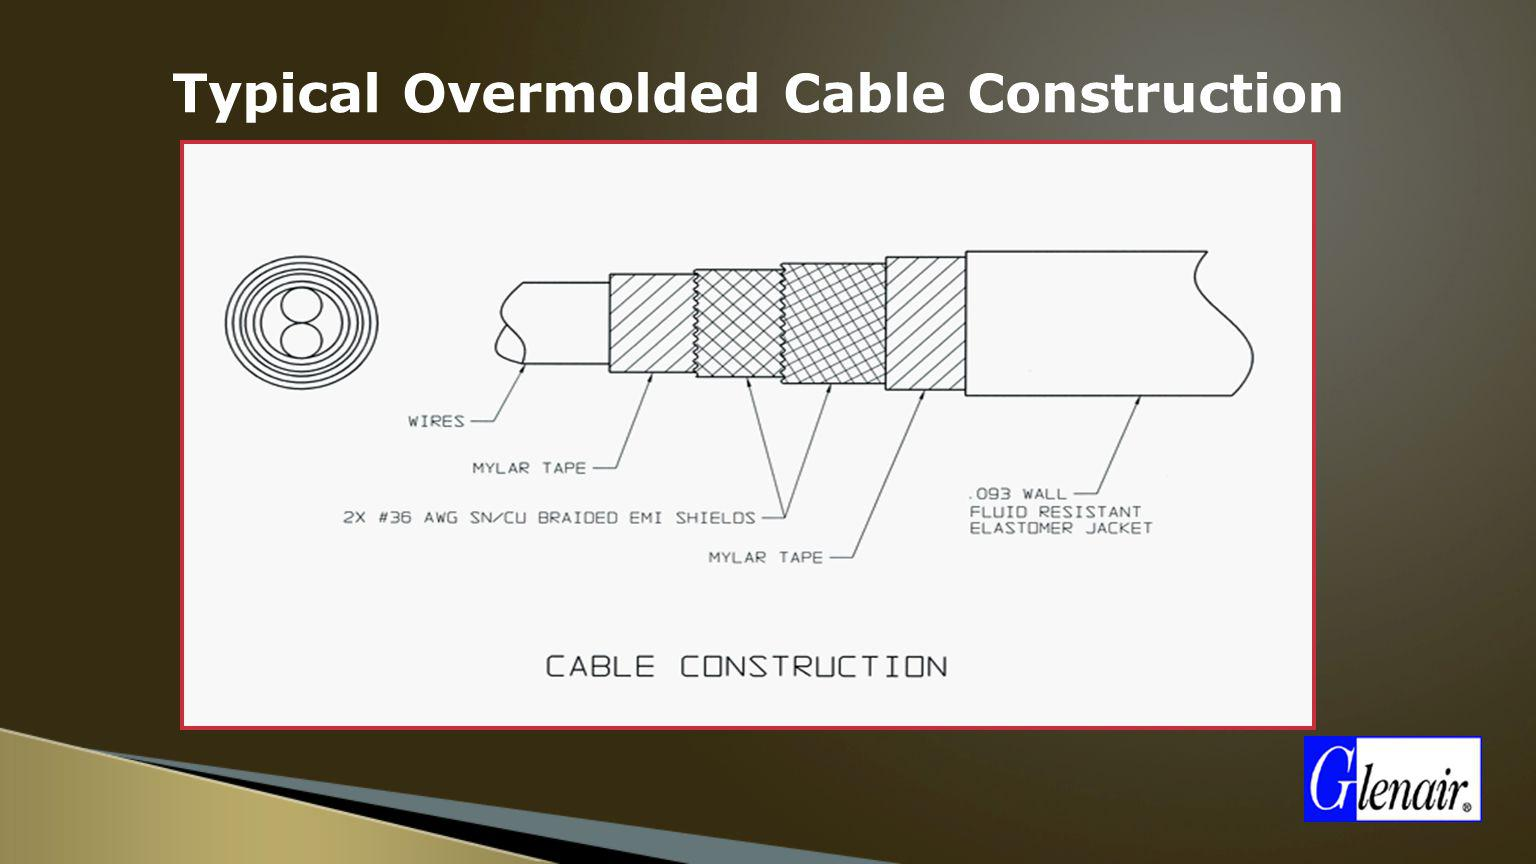 Typical Overmolded Cable Construction